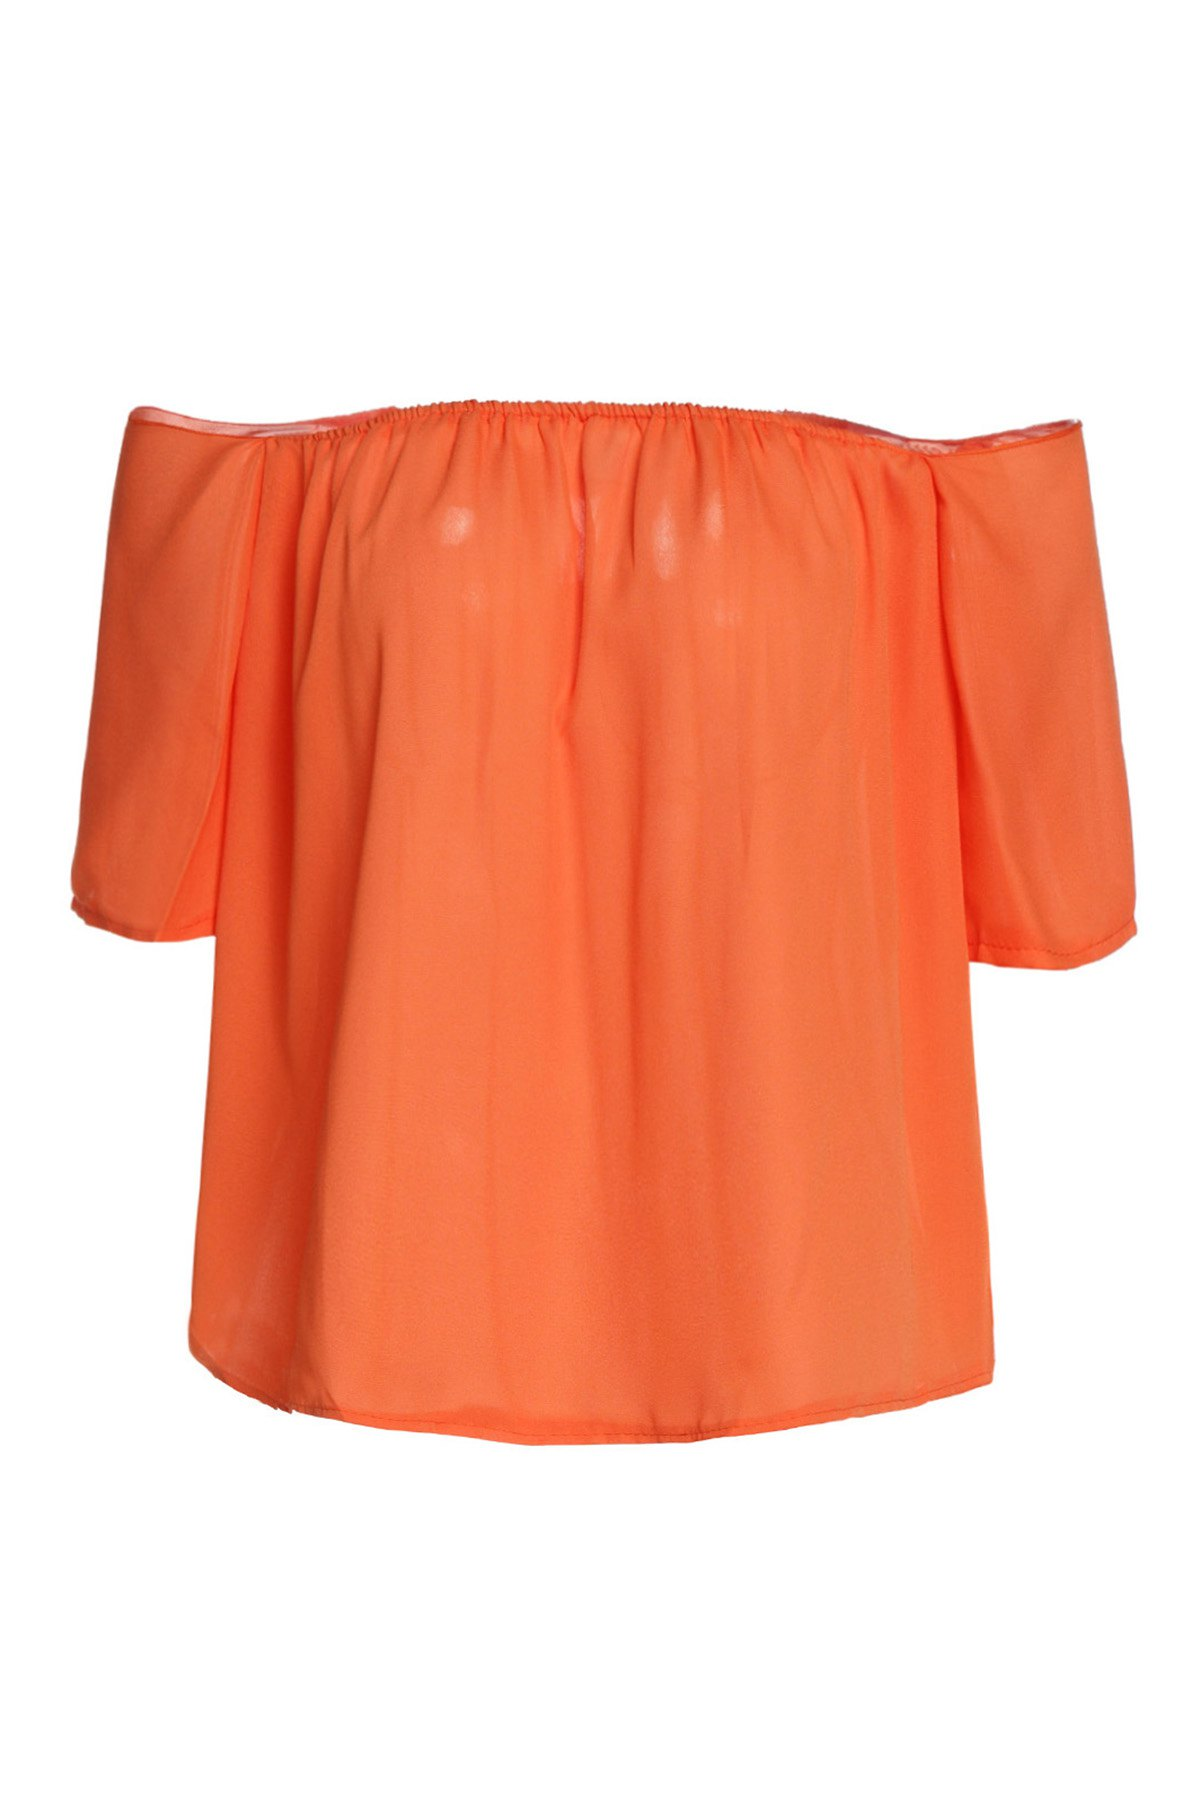 Sexy Off-The-Shoulder Solid Color Pleated Blouse For Women